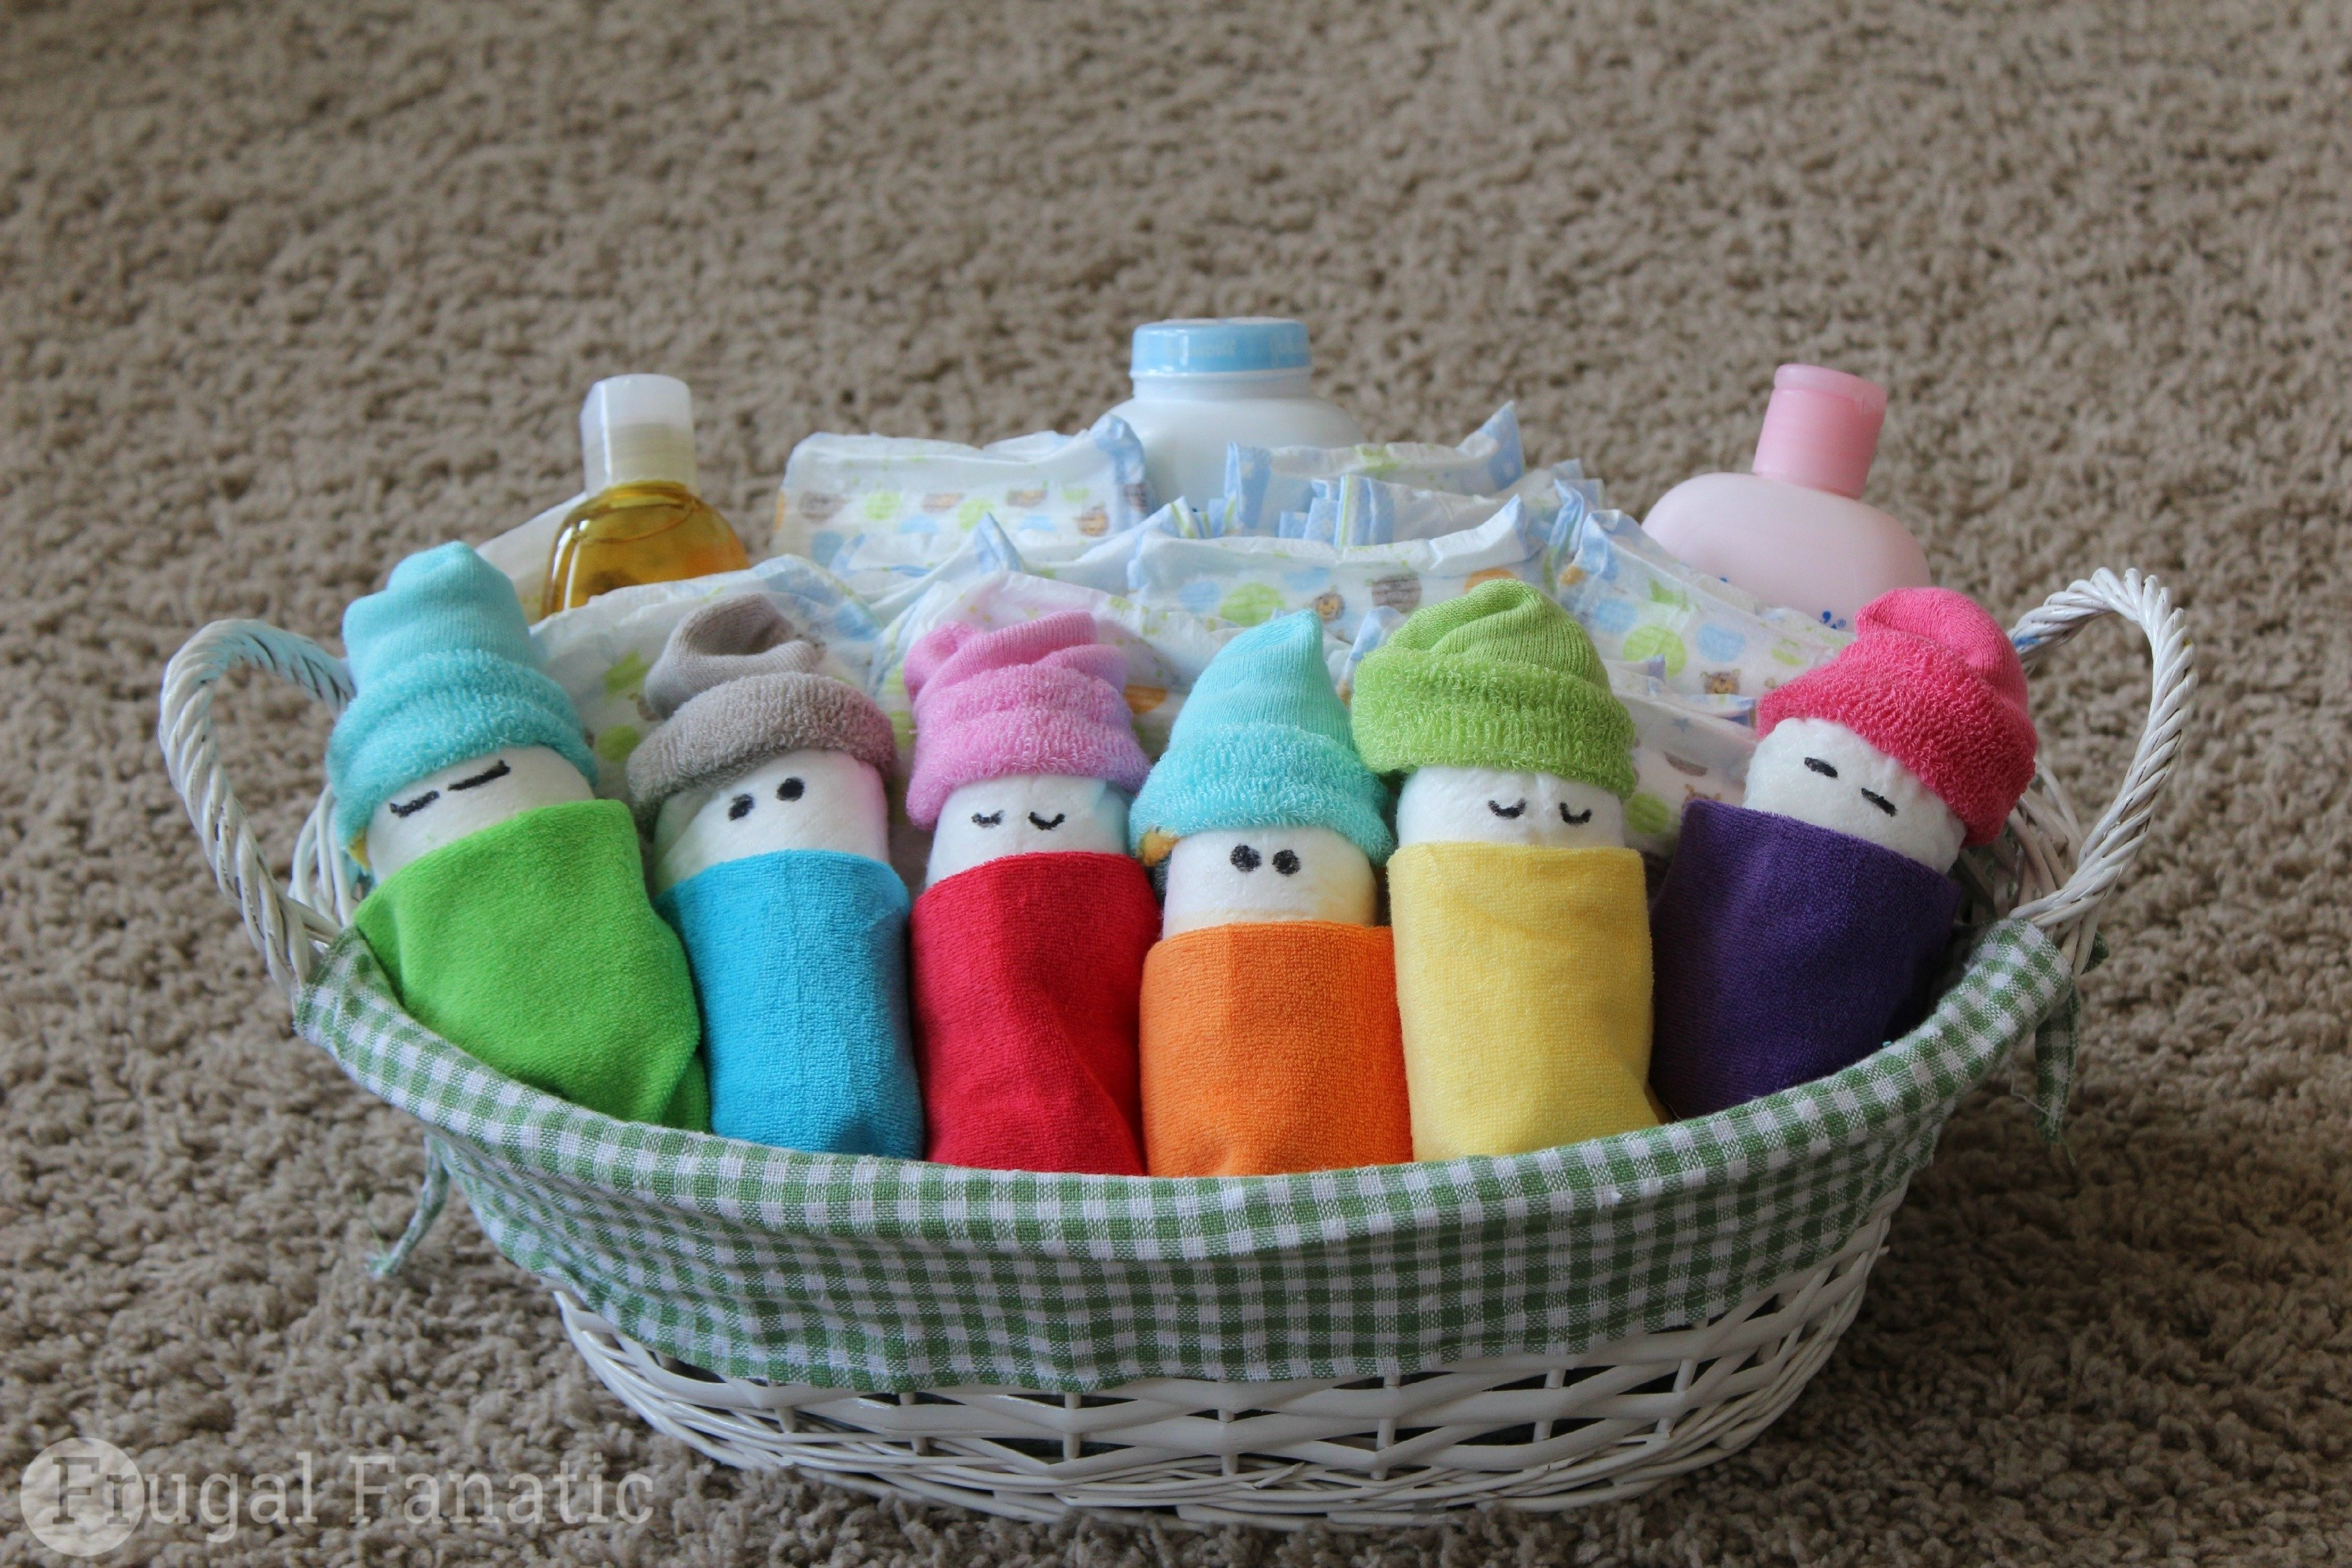 10 Fabulous Ideas For Baby Shower Gifts how to make diaper babies easy baby shower gift idea frugal fanatic 7